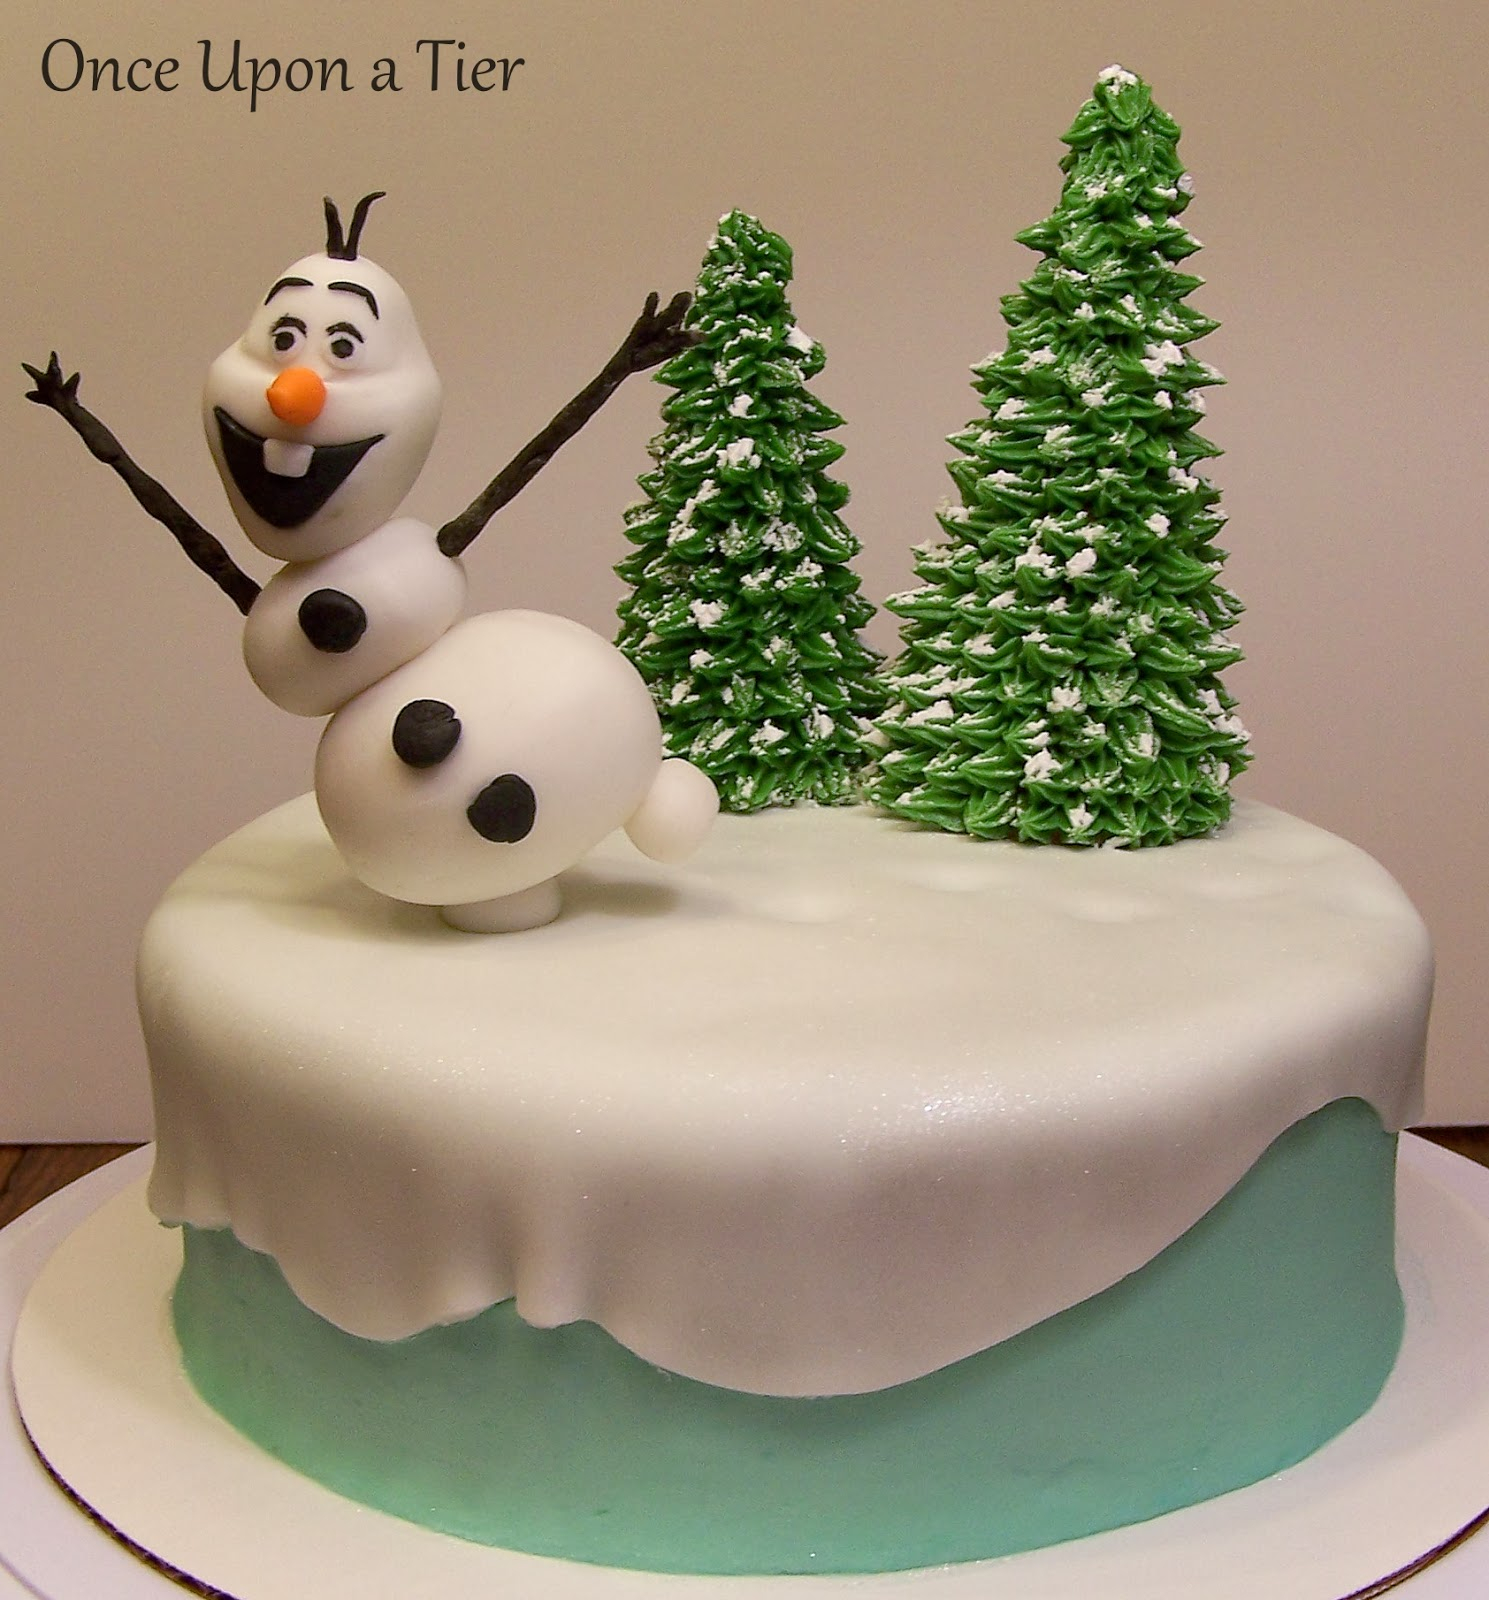 Olaf Birthday Cake Once Upon A Tier Olaf Cake Rachels Birthday Cake